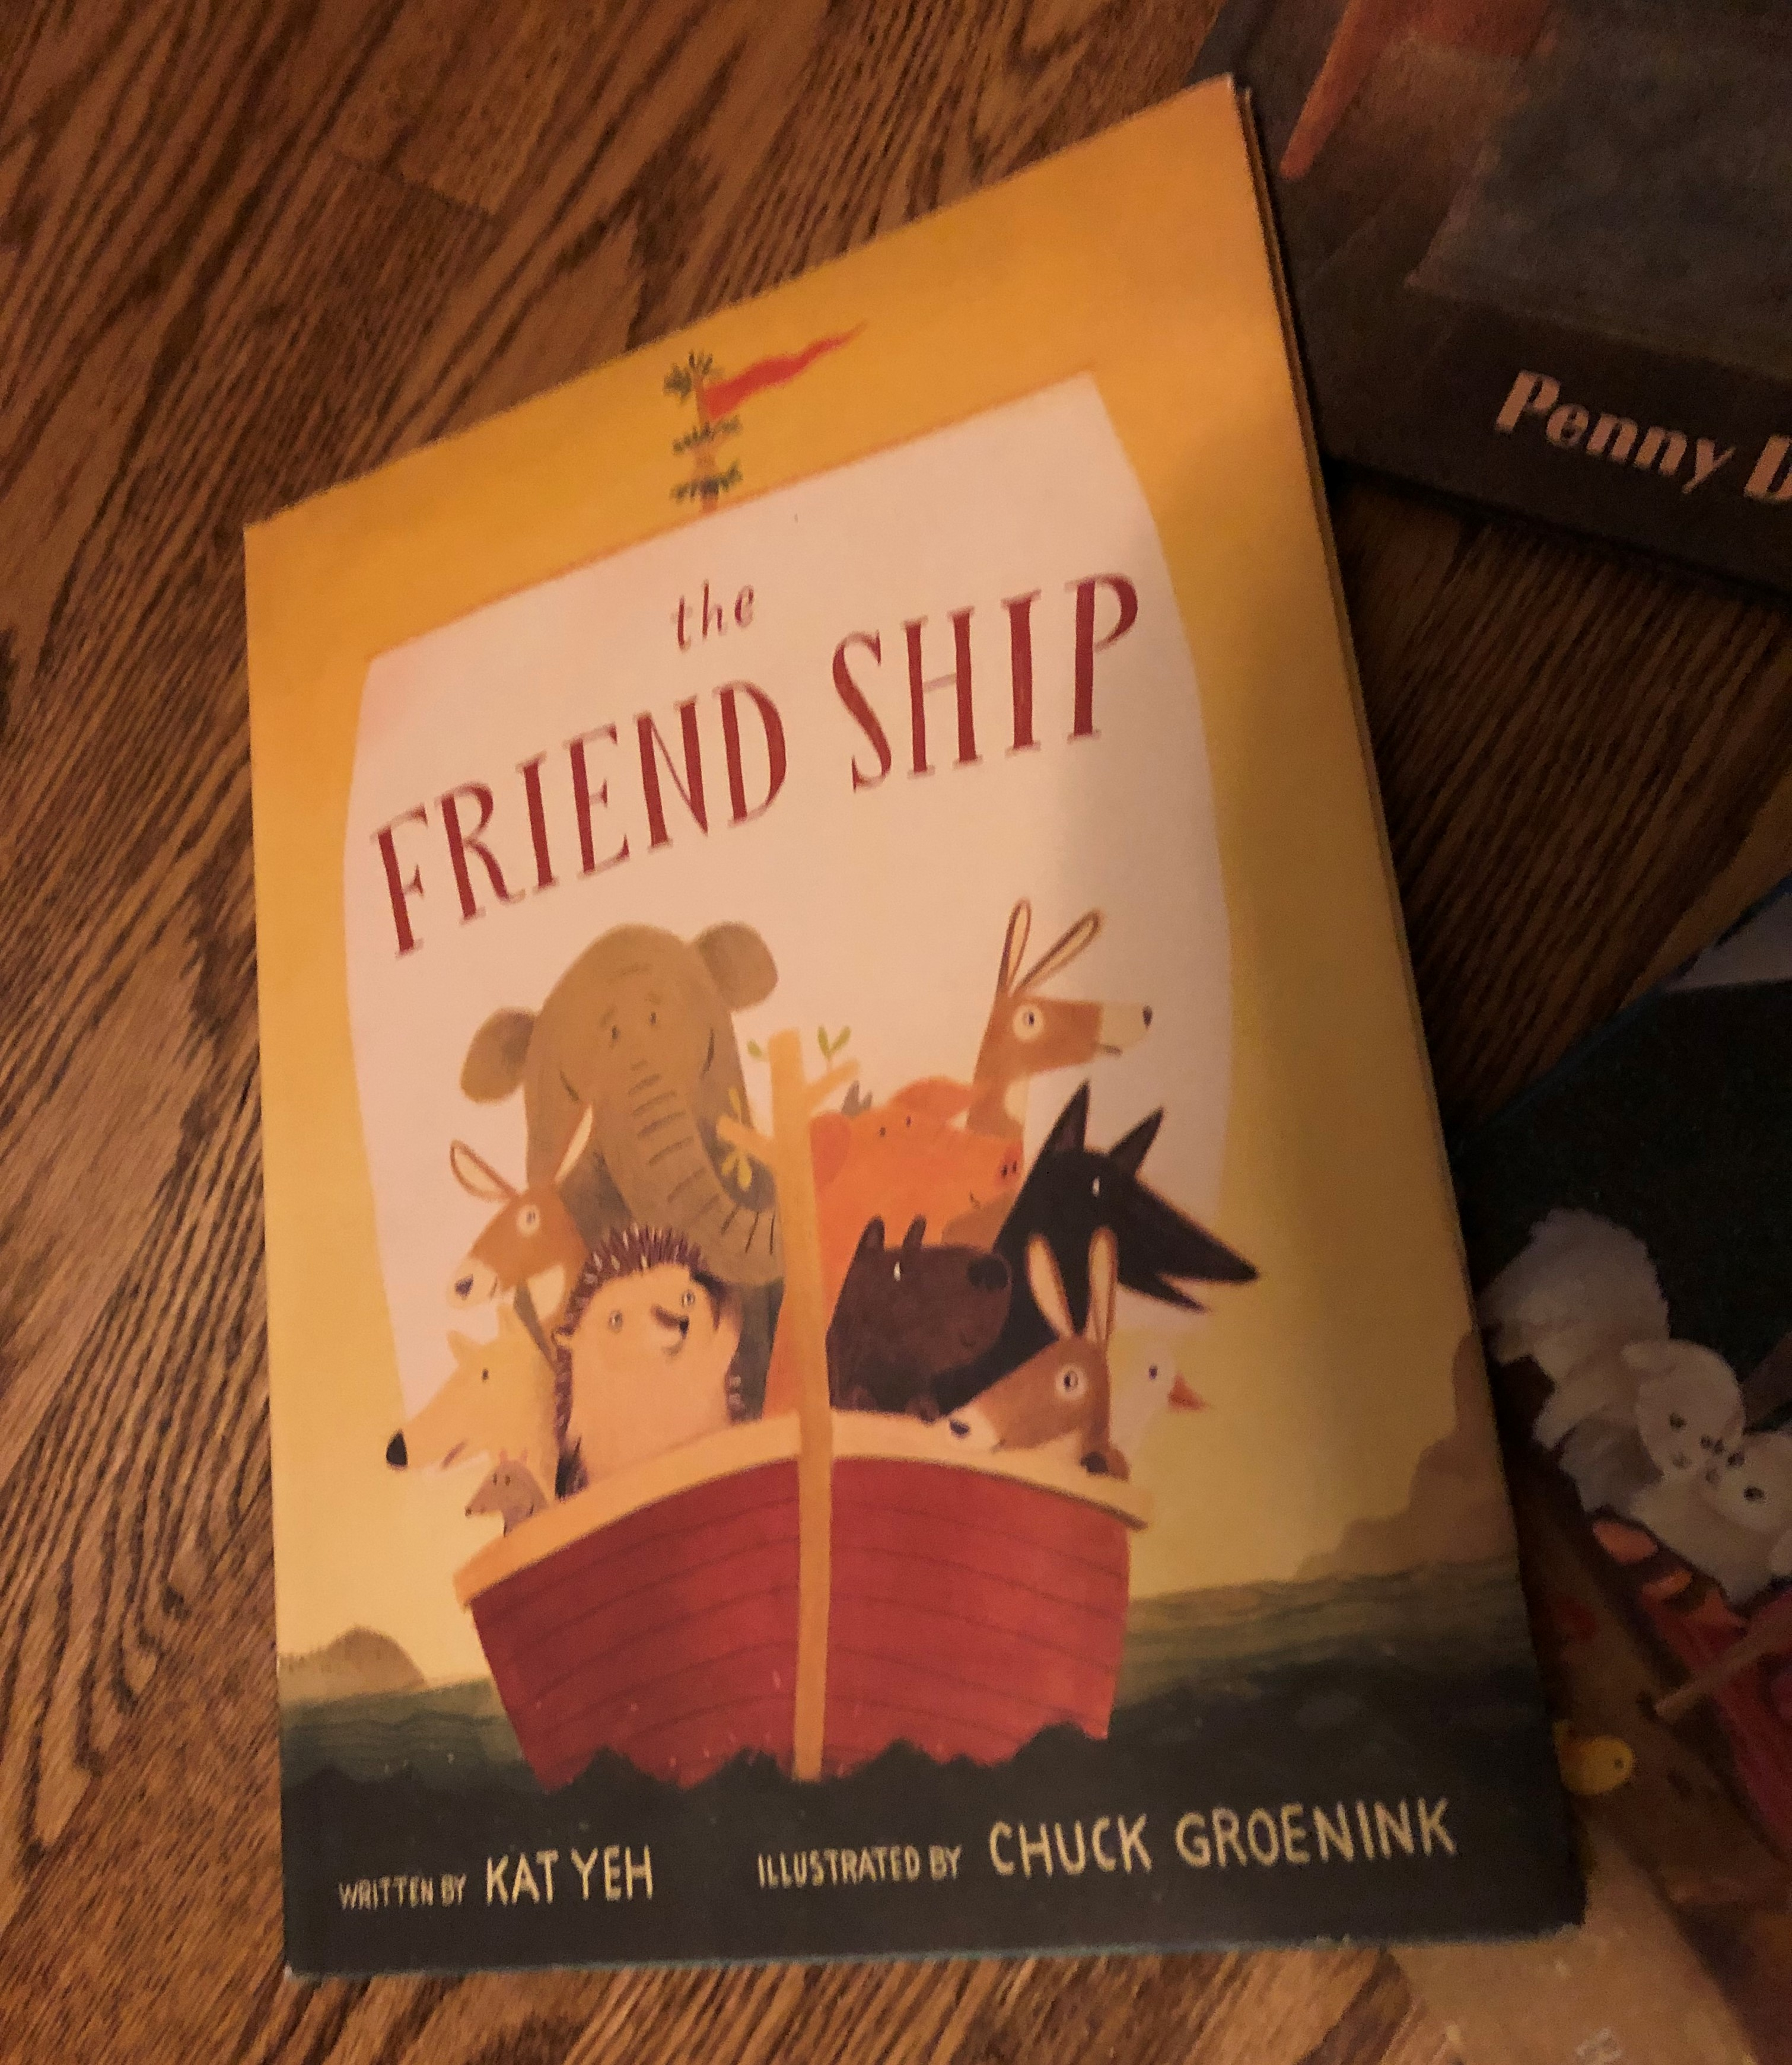 The Friend Ship